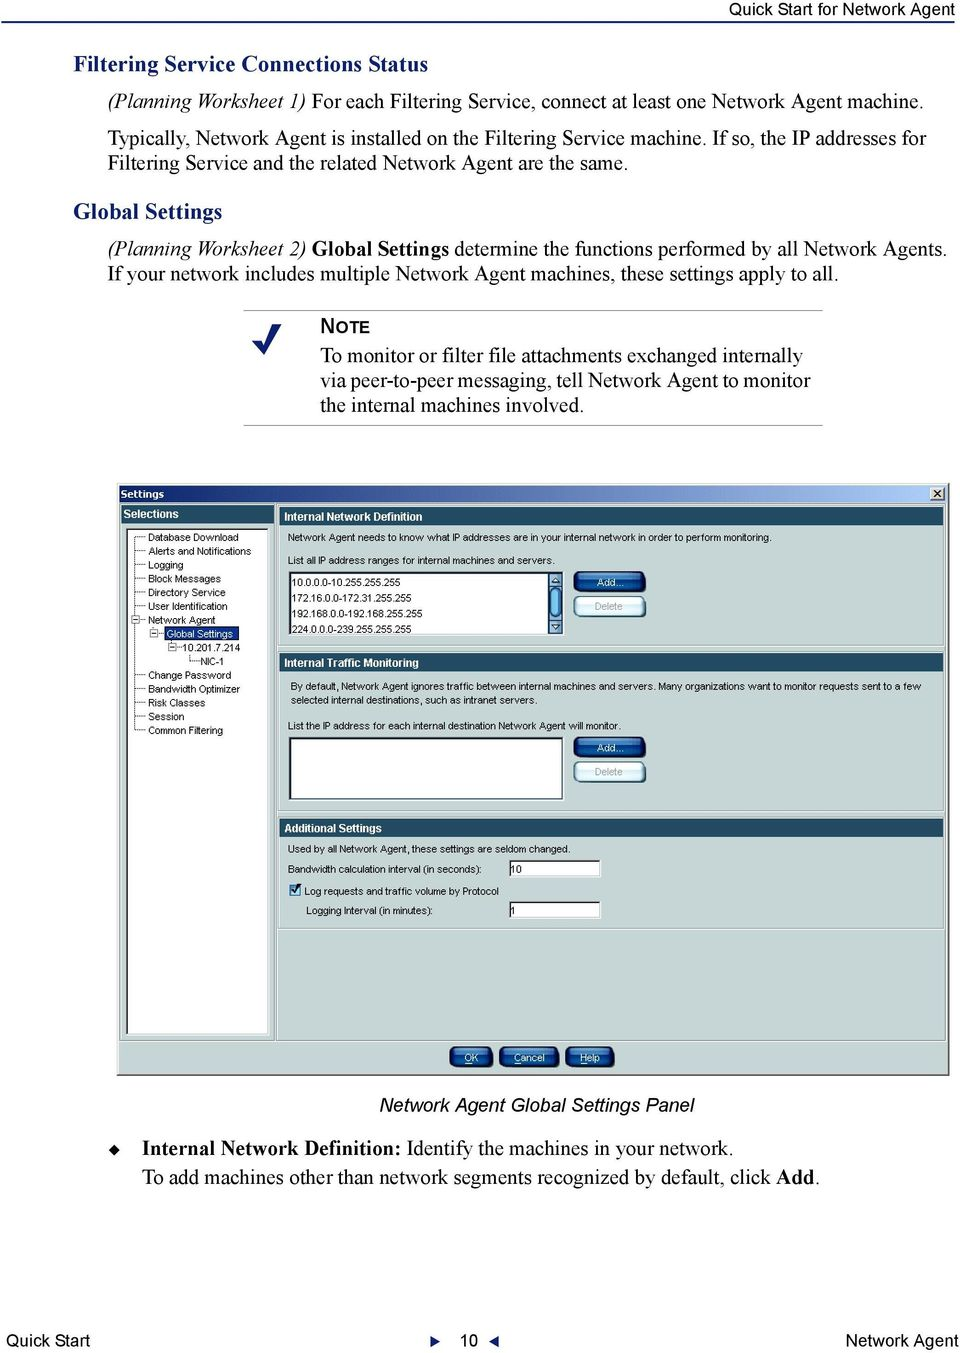 Global Settings (Planning Worksheet 2) Global Settings determine the functions performed by all Network Agents. If your network includes multiple Network Agent machines, these settings apply to all.